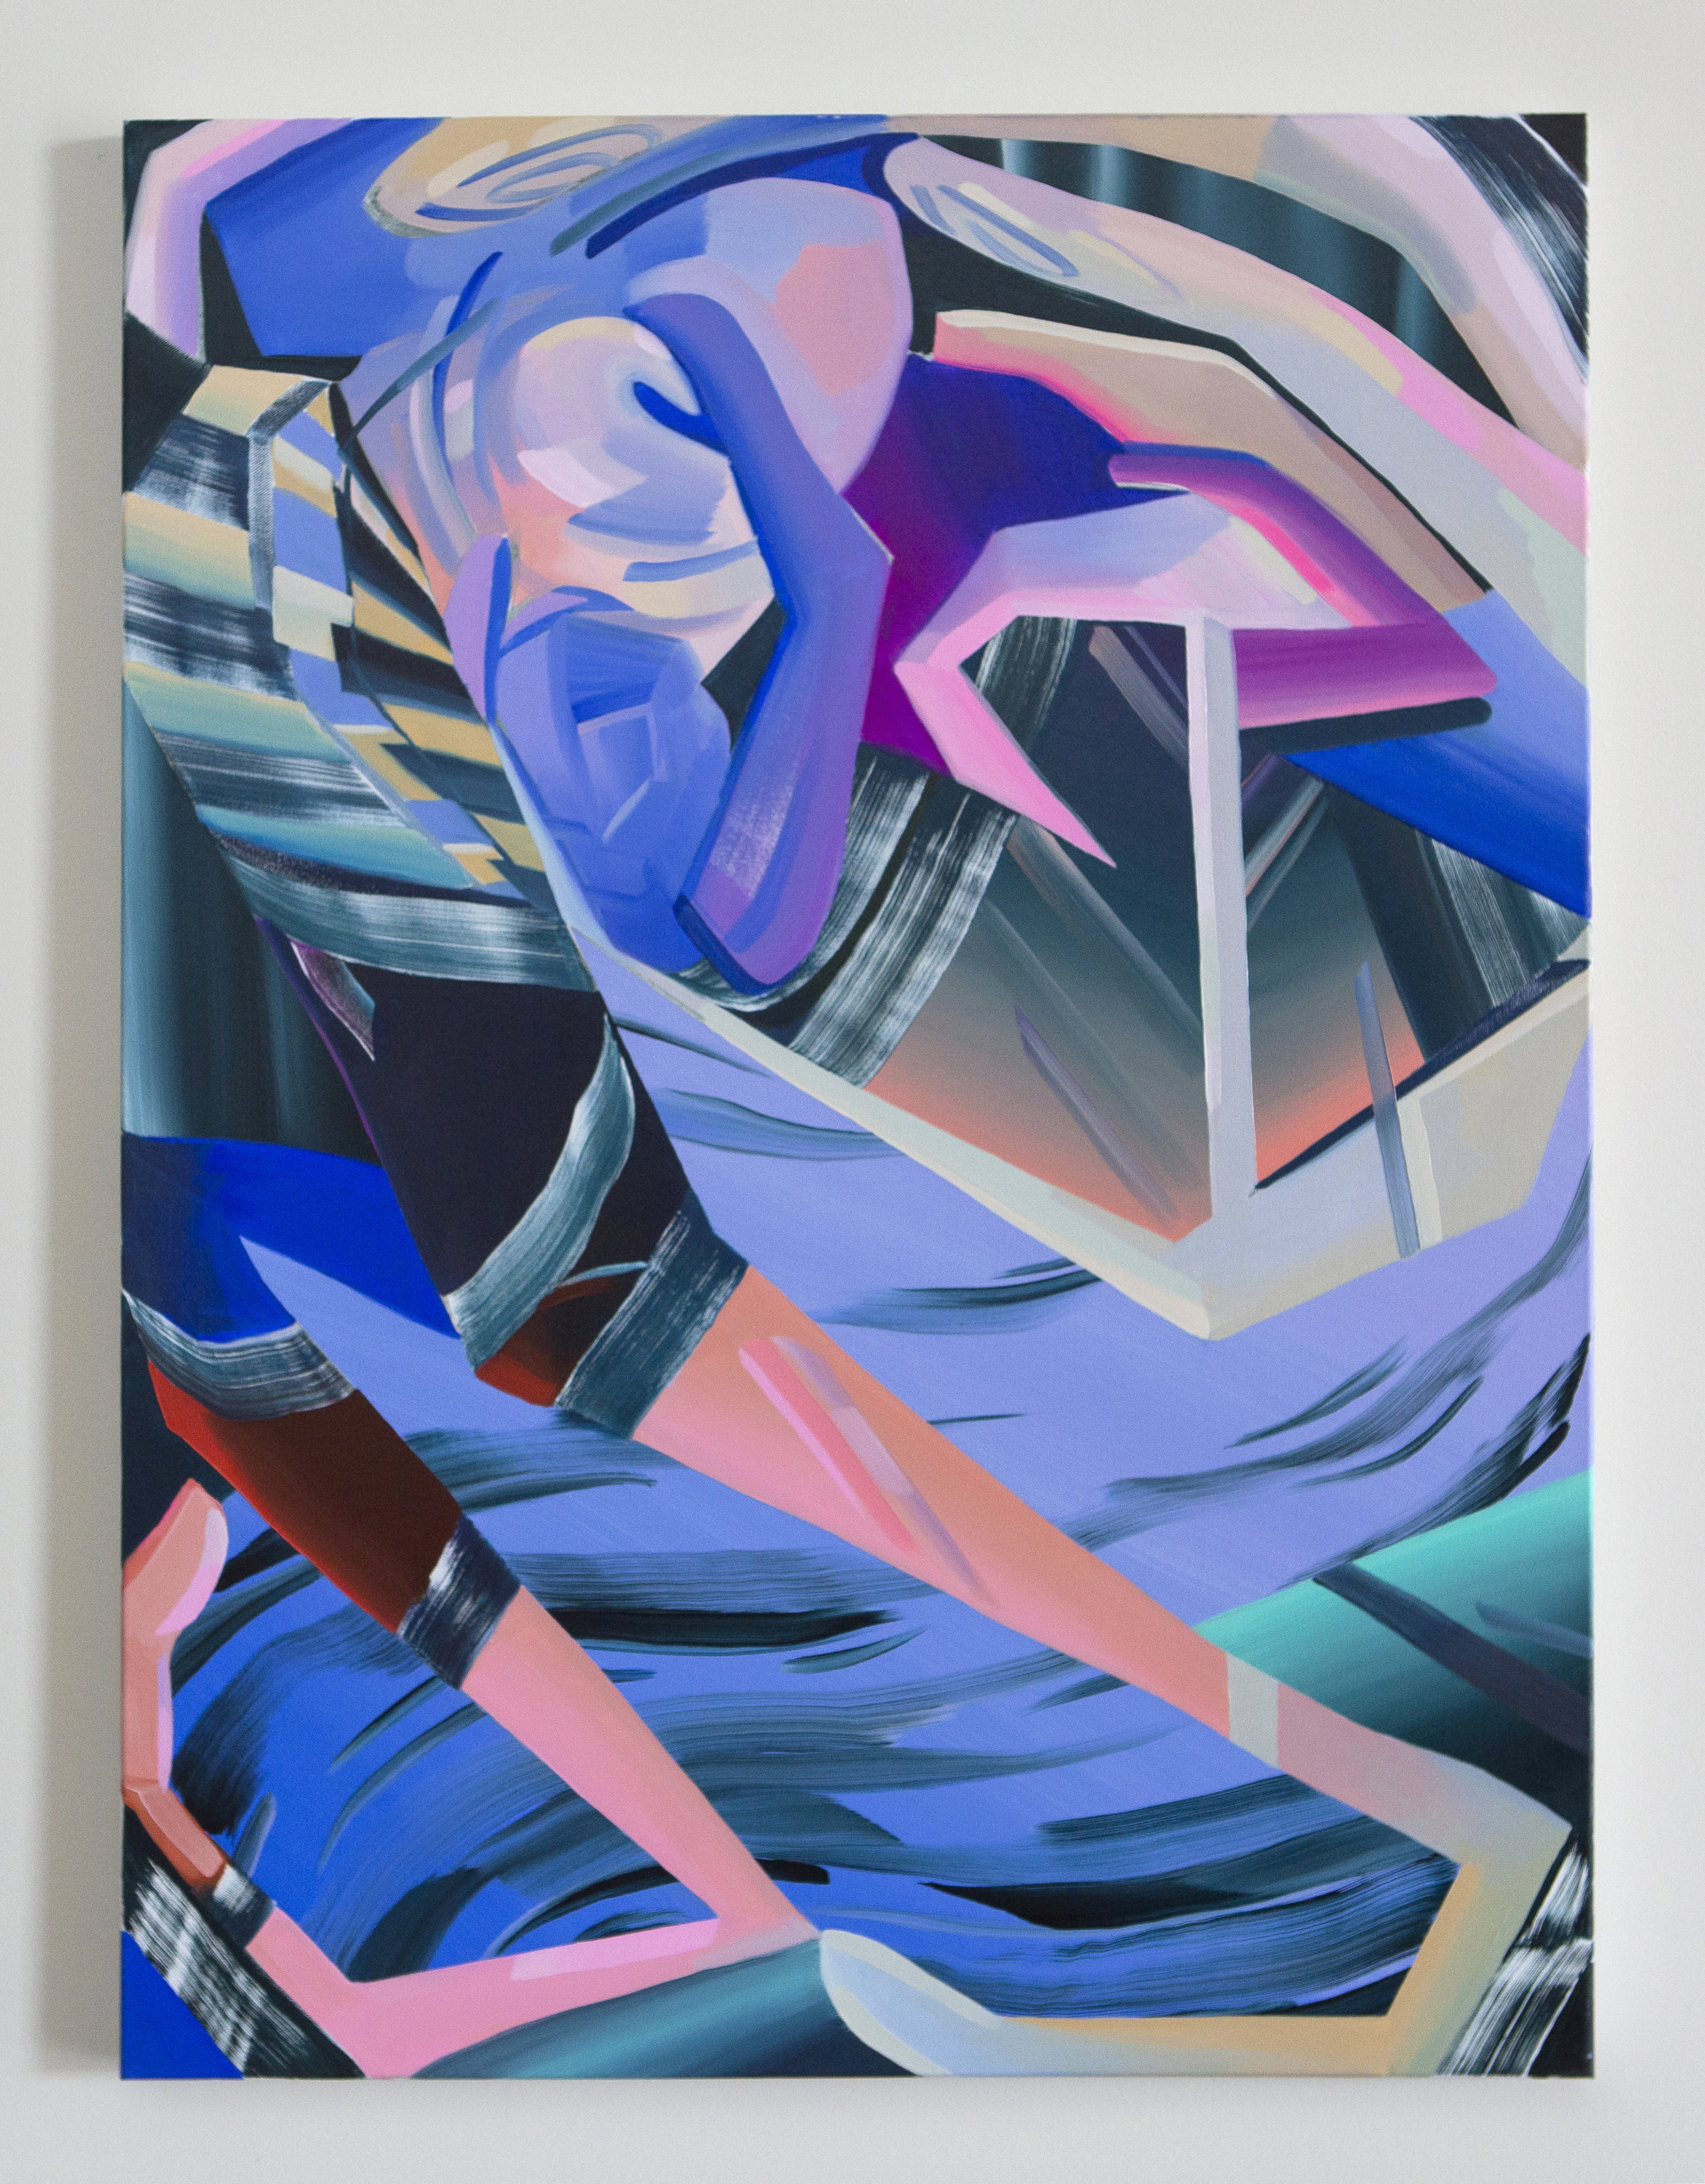 Night Walking (For Durga), 2017, oil on canvas, 48 x 36 inches